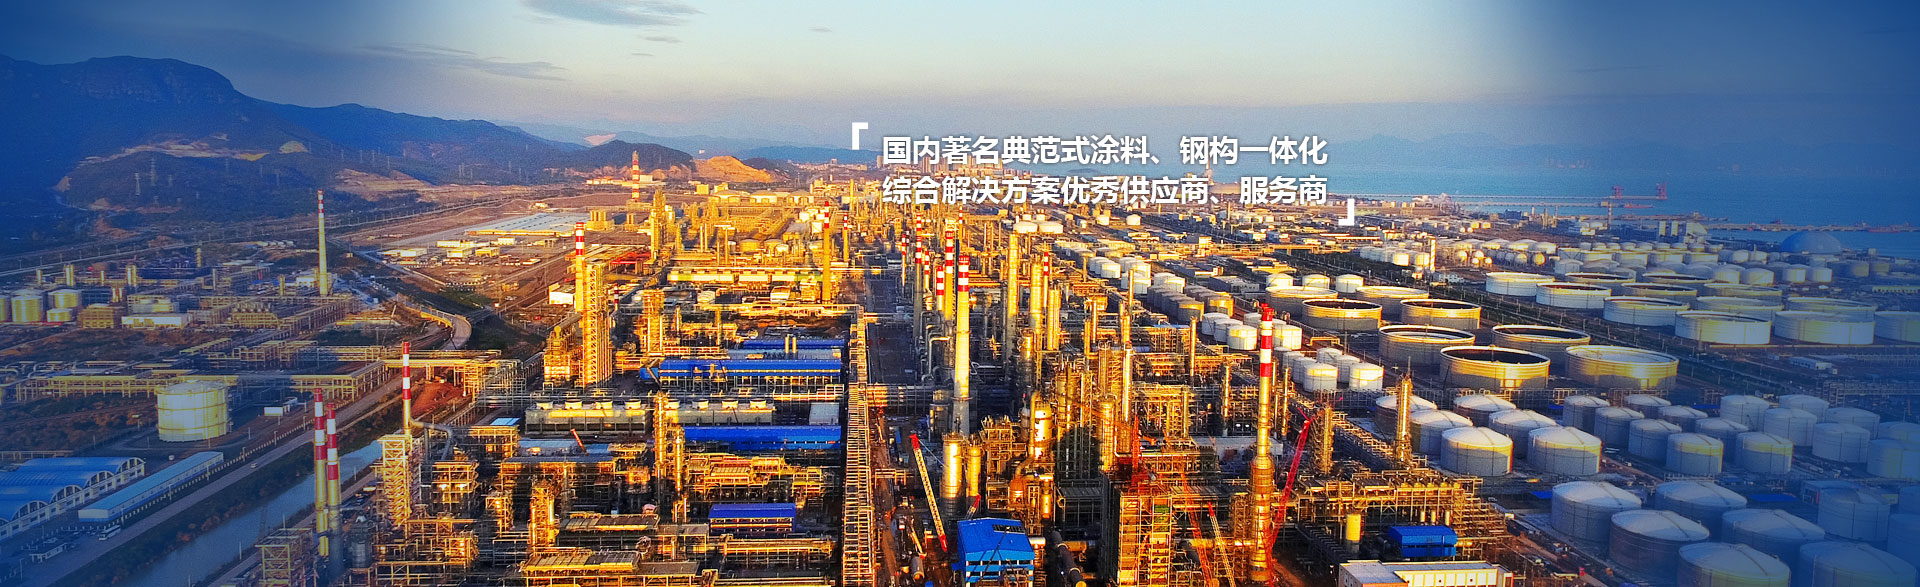 Huilian Phase II Refining Zone Anti-corrosion coating Project